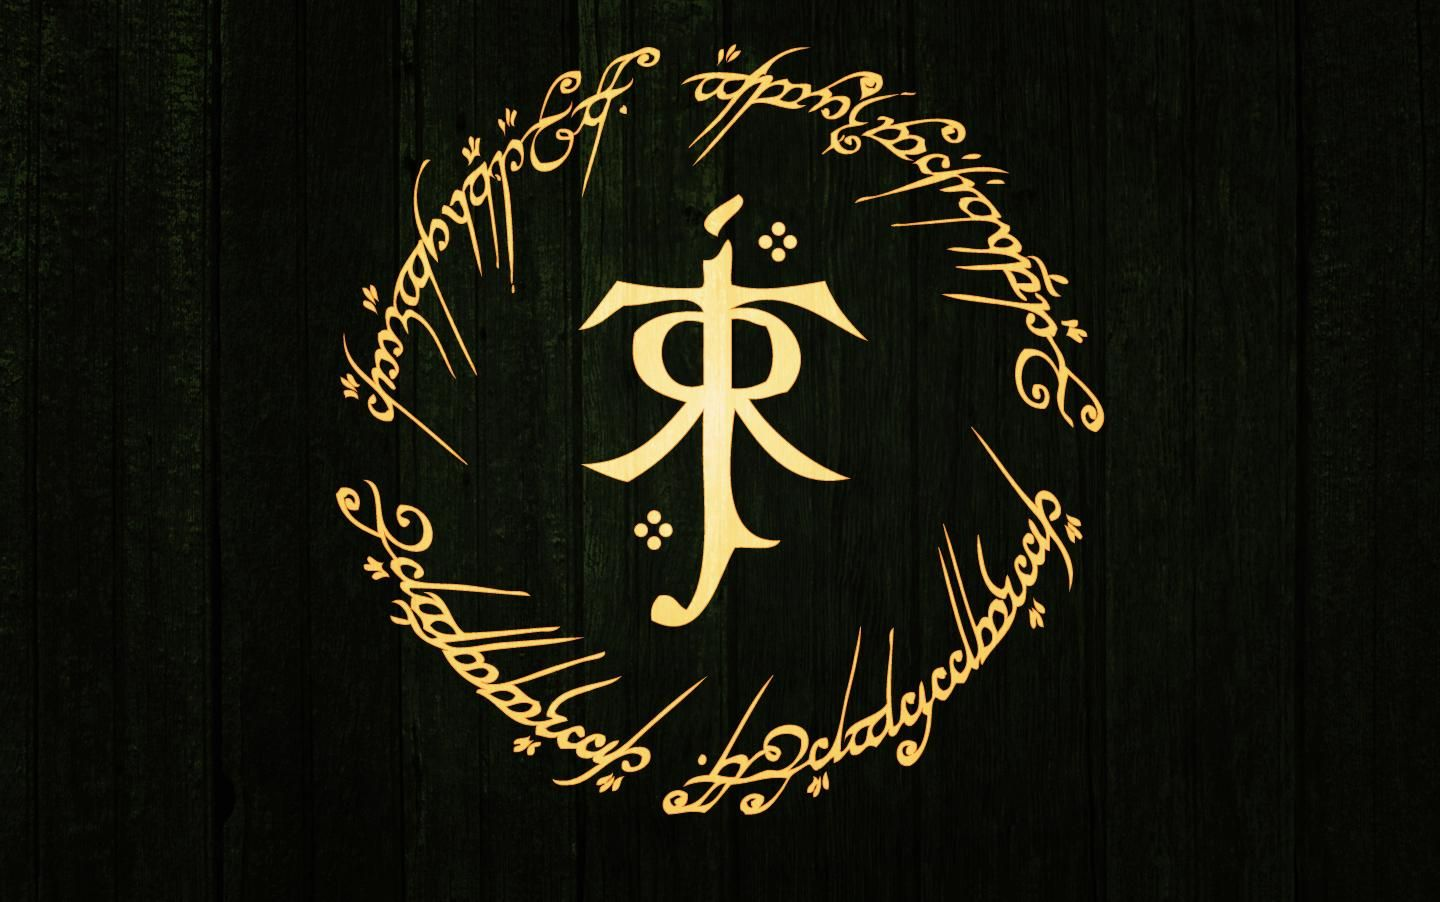 Tolkien symbol with the prophecy one ring to rule them all one tolkien symbol with the prophecy one ring to rule them all one ring to biocorpaavc Choice Image